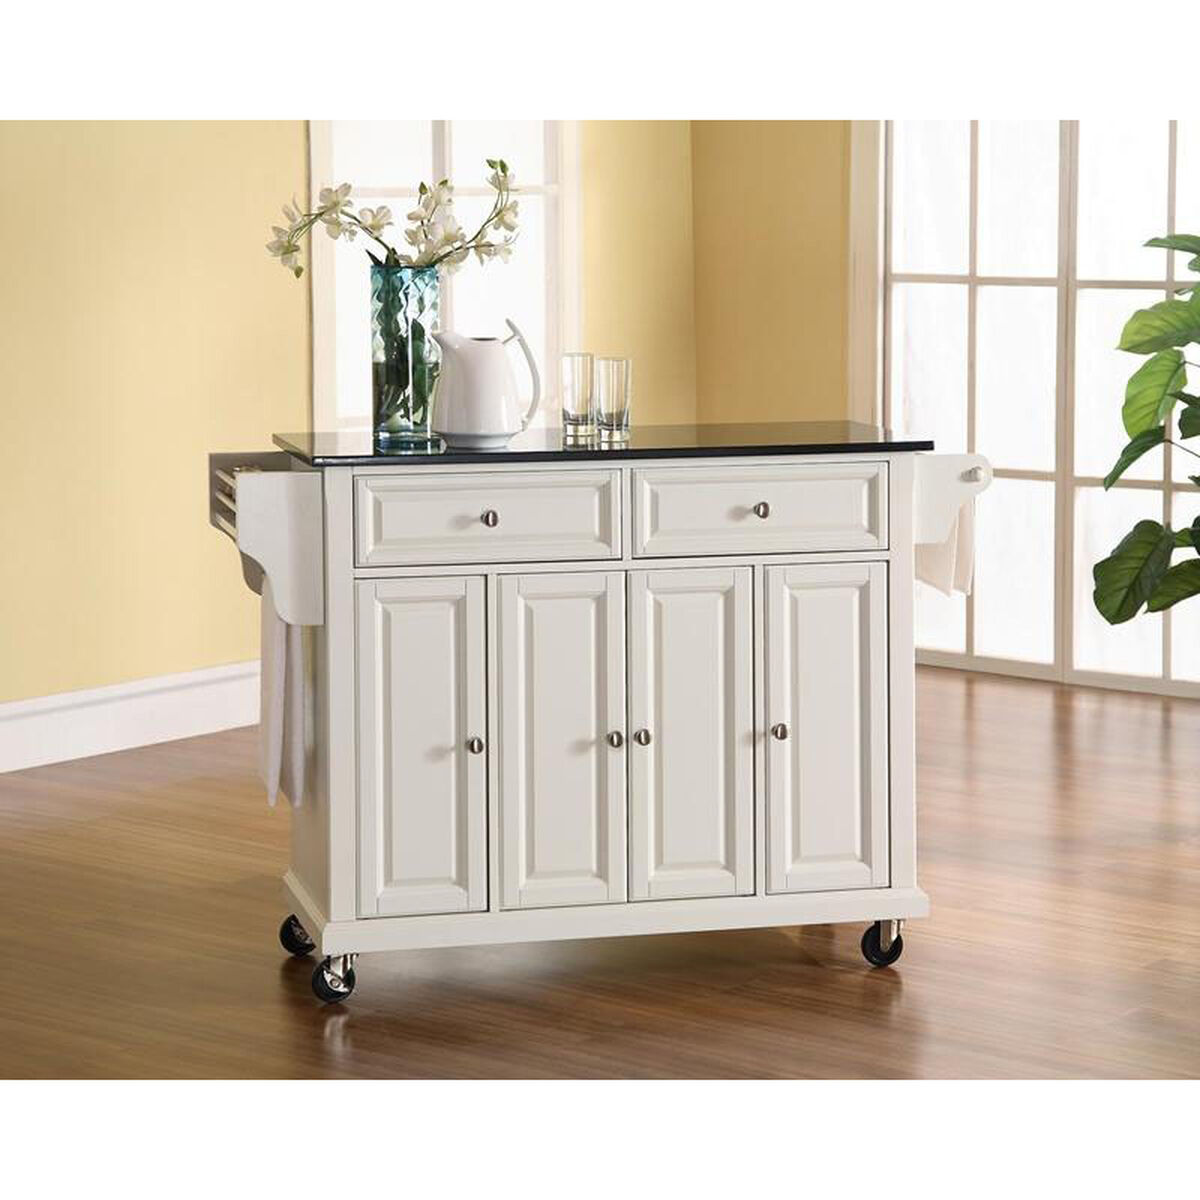 Our Solid Black Granite Top Kitchen Island Cart With Cabinets White Finish Is On